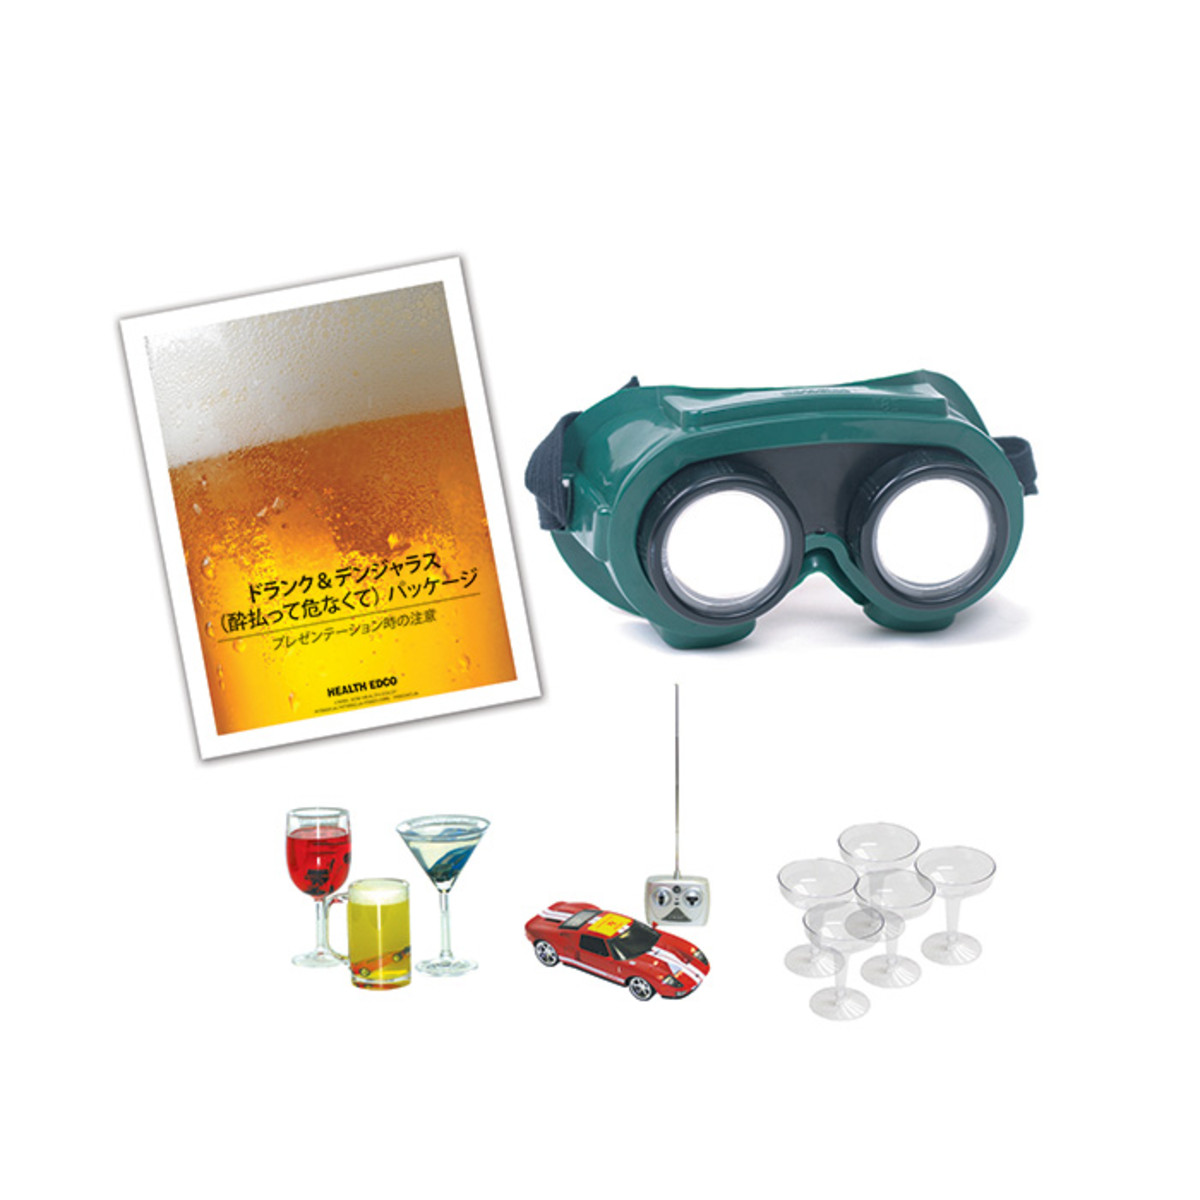 Health Edco; health education; alcohol awareness products; drunk driving; drink-driving; blood alcohol concentration; intoxicated driving; DUI; DWI; BAC; Japanese translation; alcohol goggles